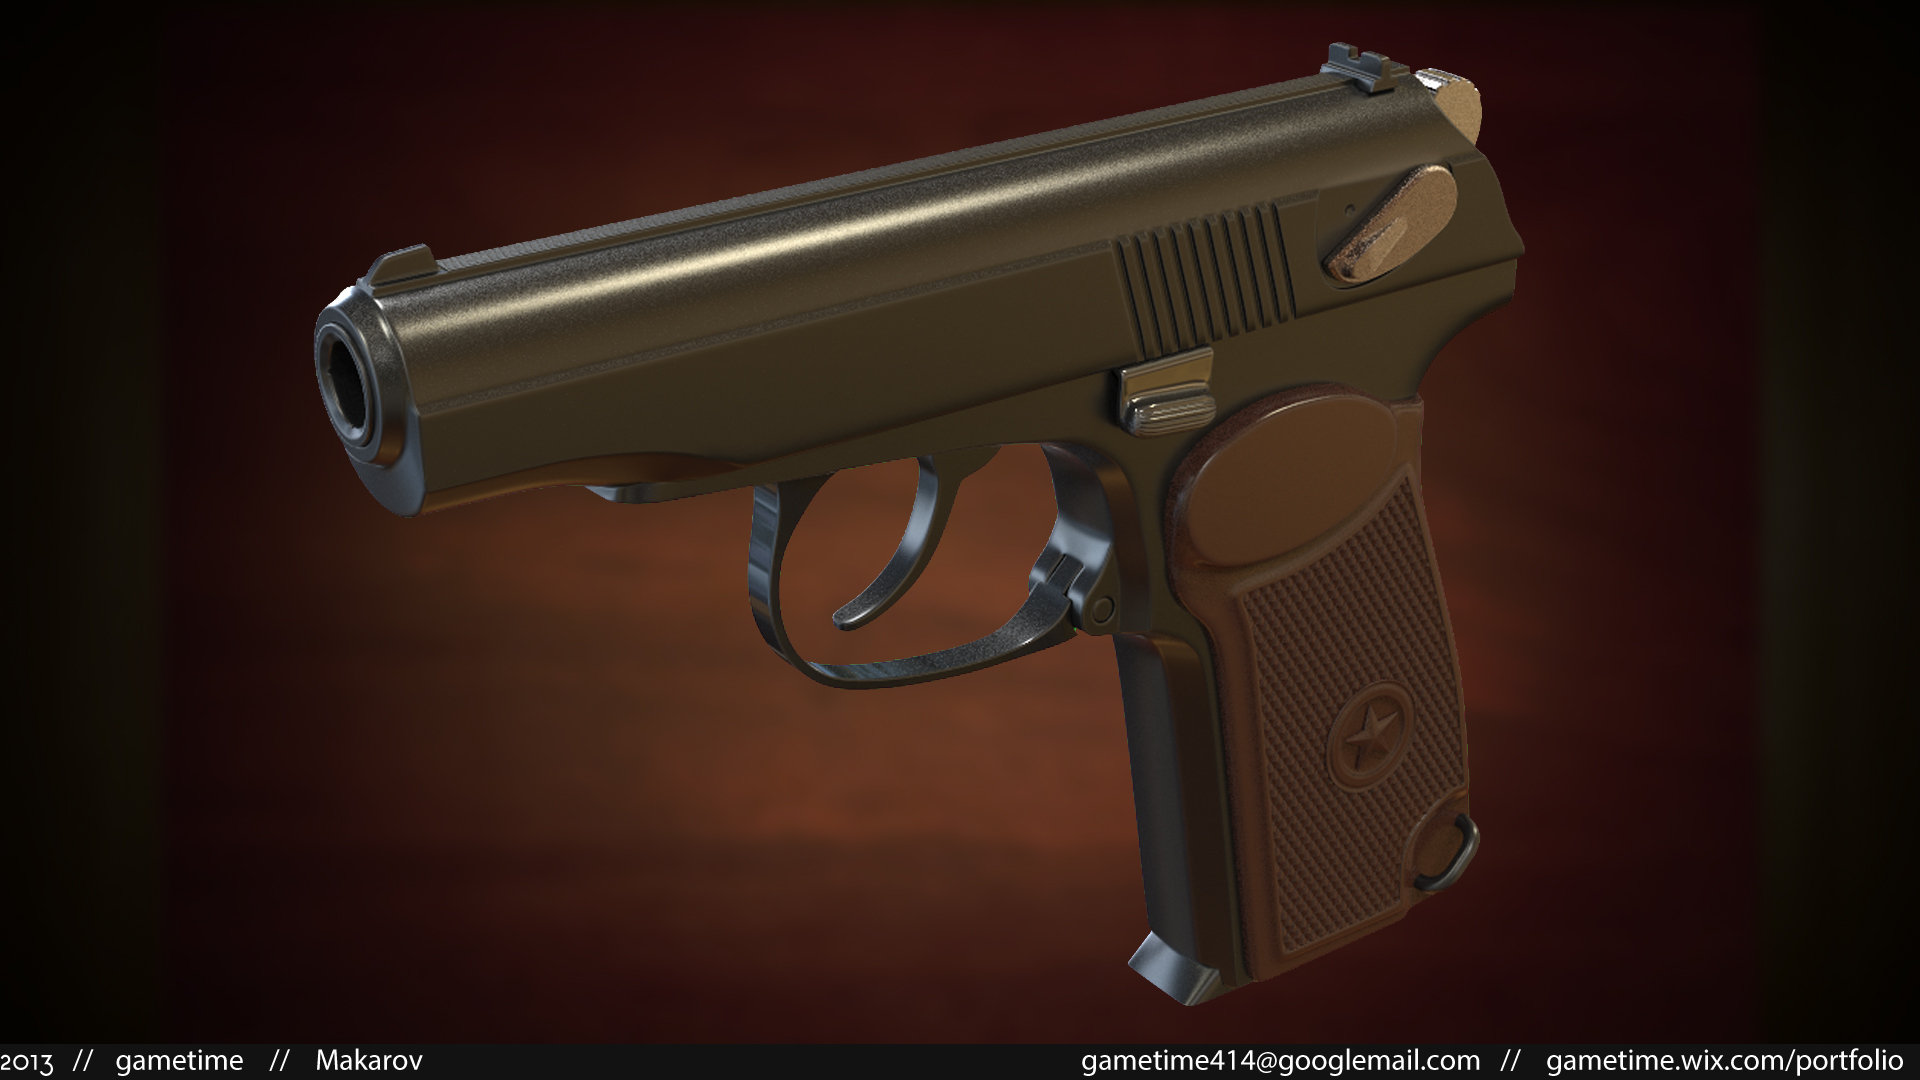 Artstation Makarov Gametime 414 Images, Photos, Reviews